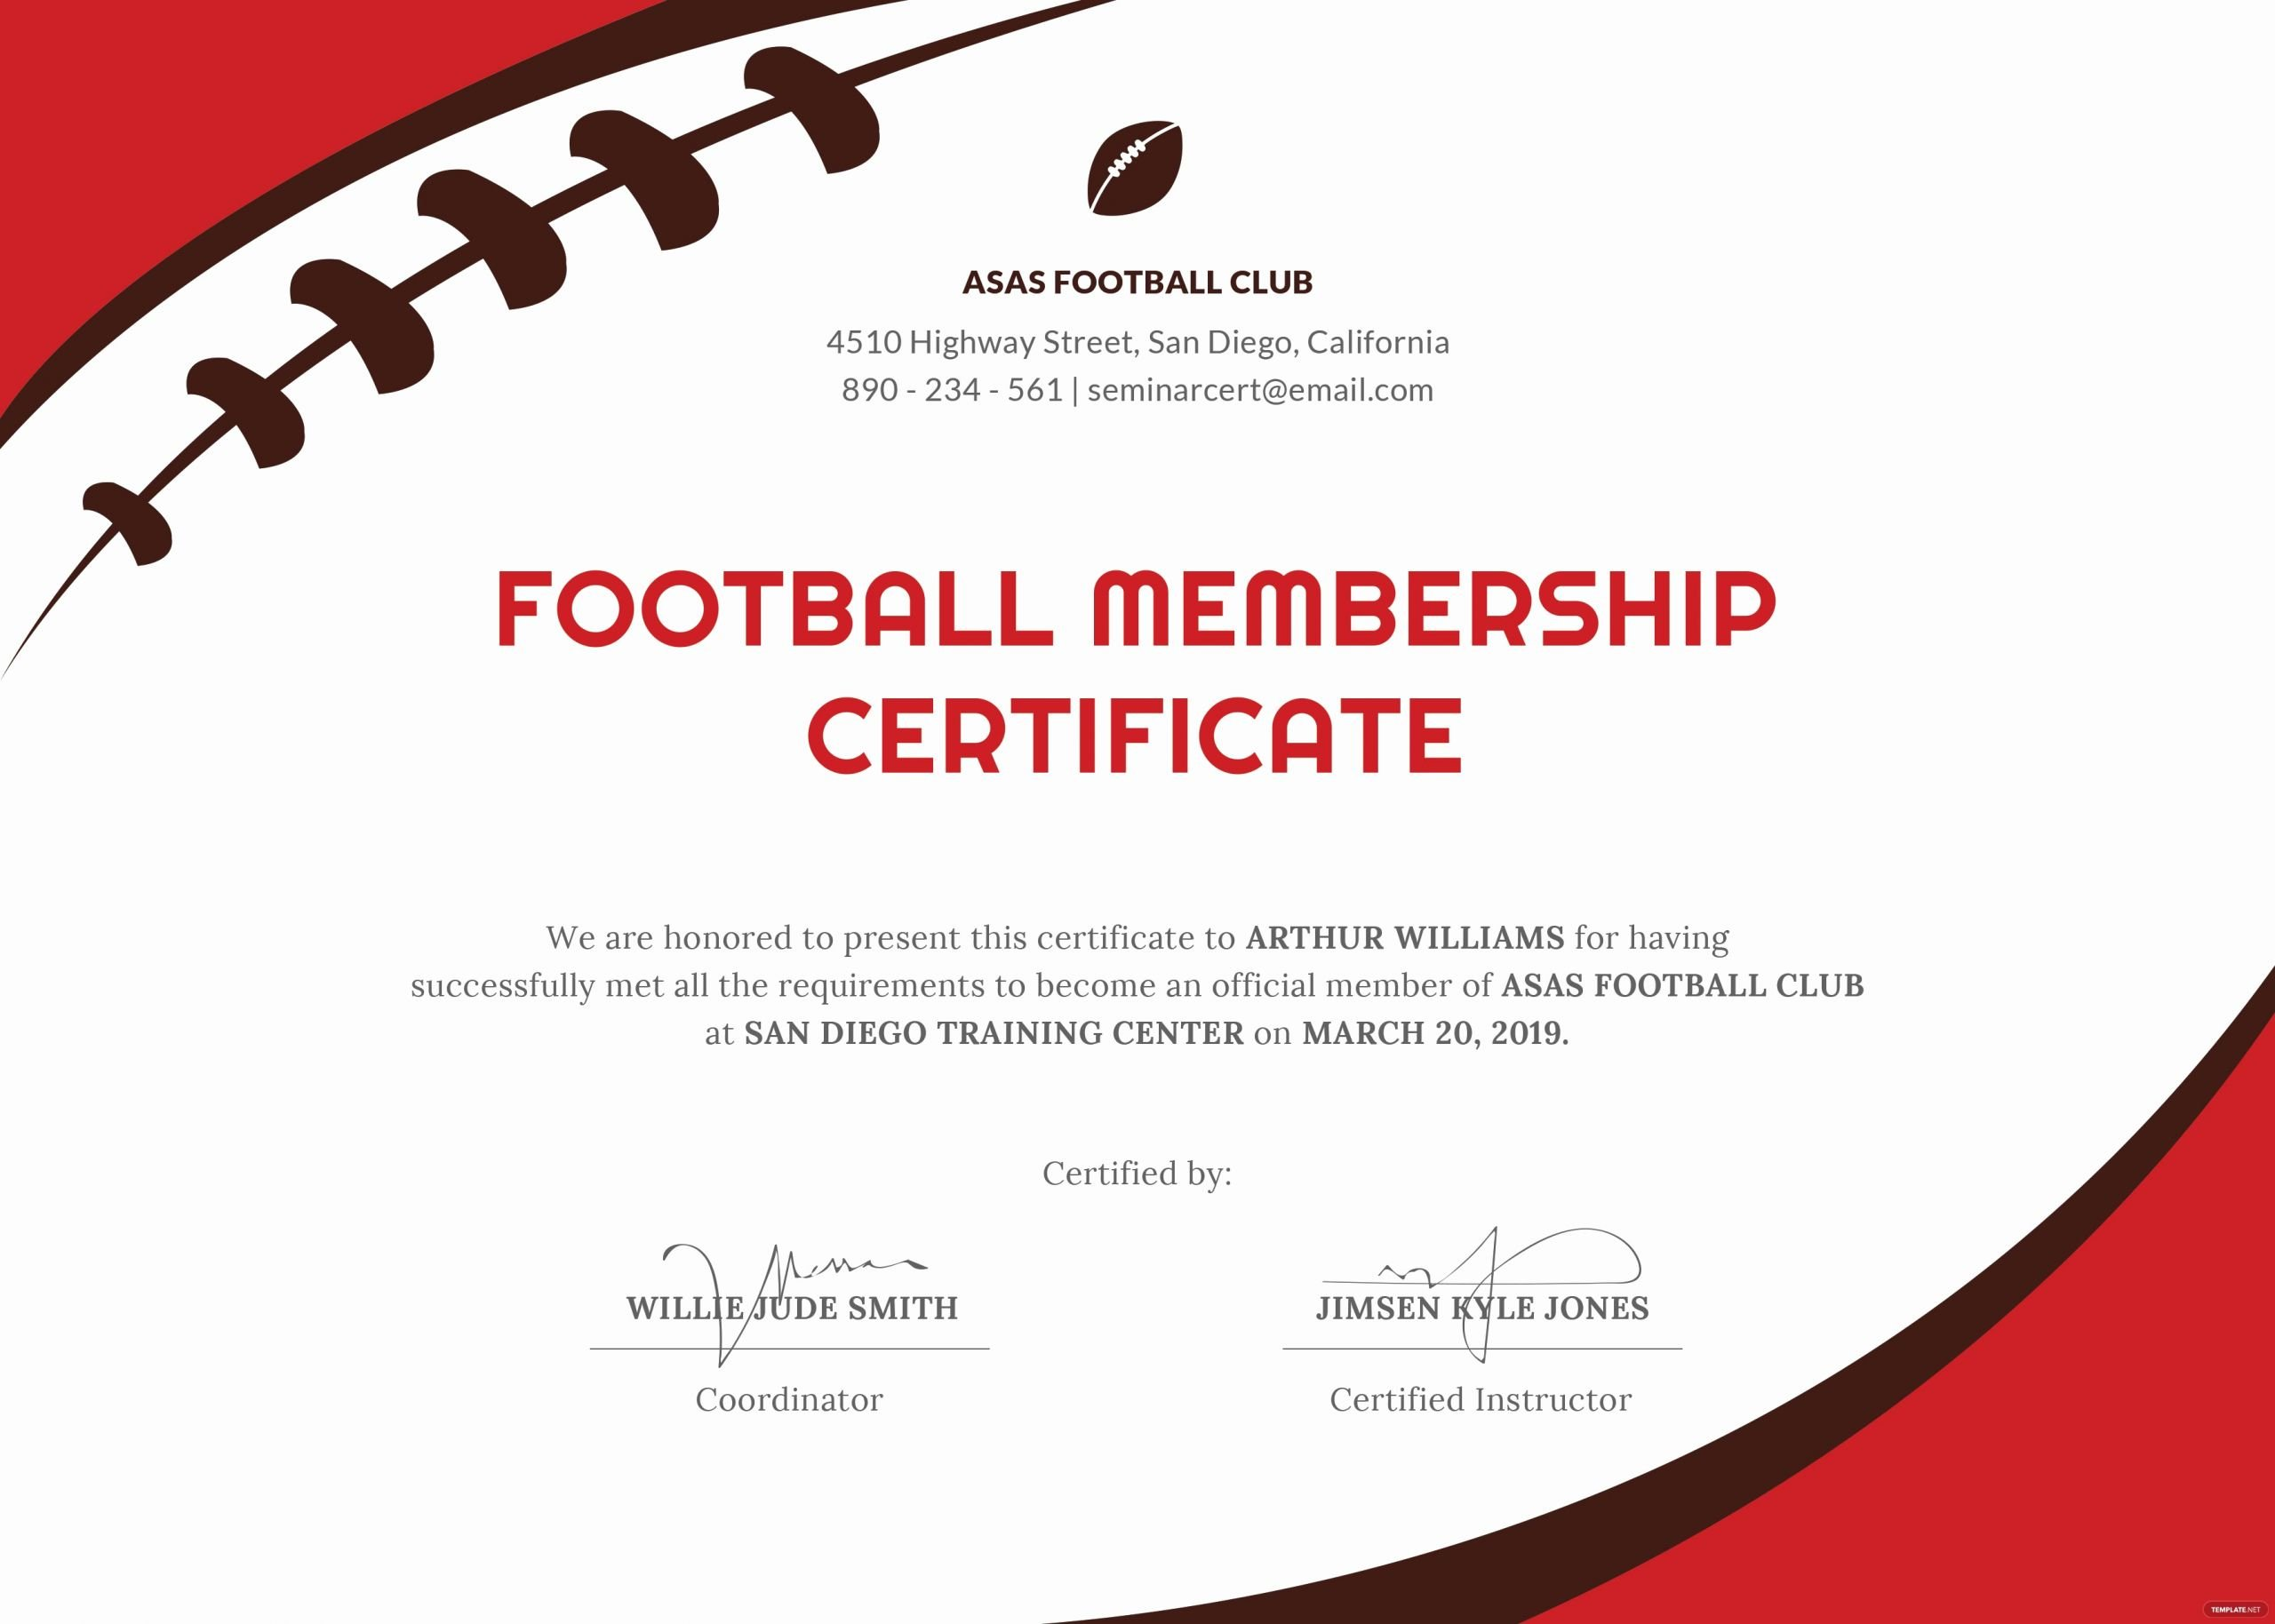 Football Certificate Template Word Beautiful Free Football Certificate Template In Psd Ms Word